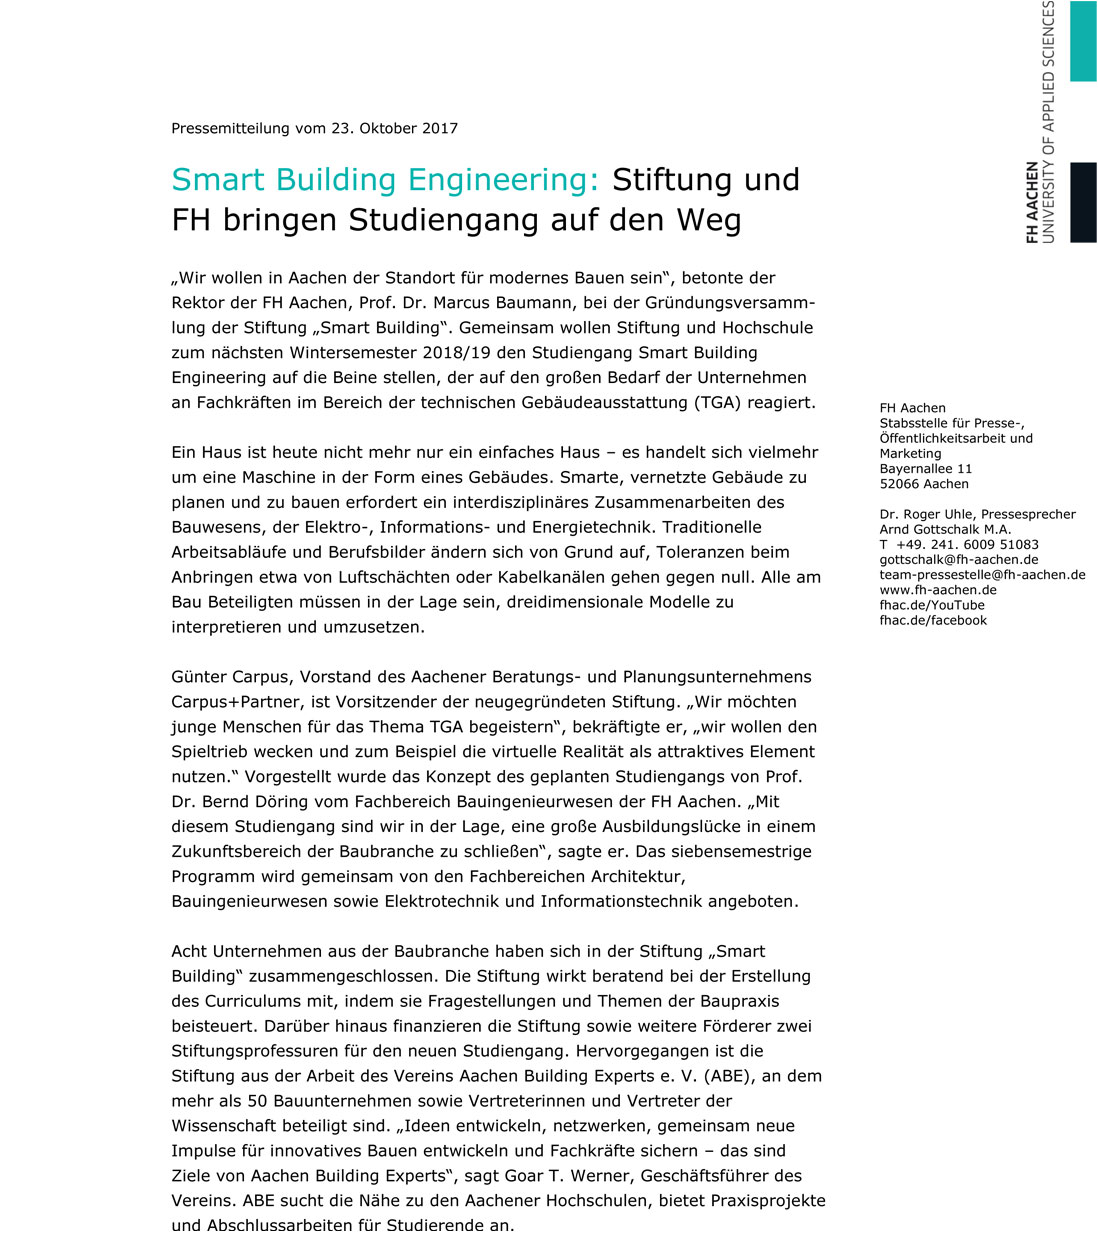 Neuer Studiengang Smart Building Engineering